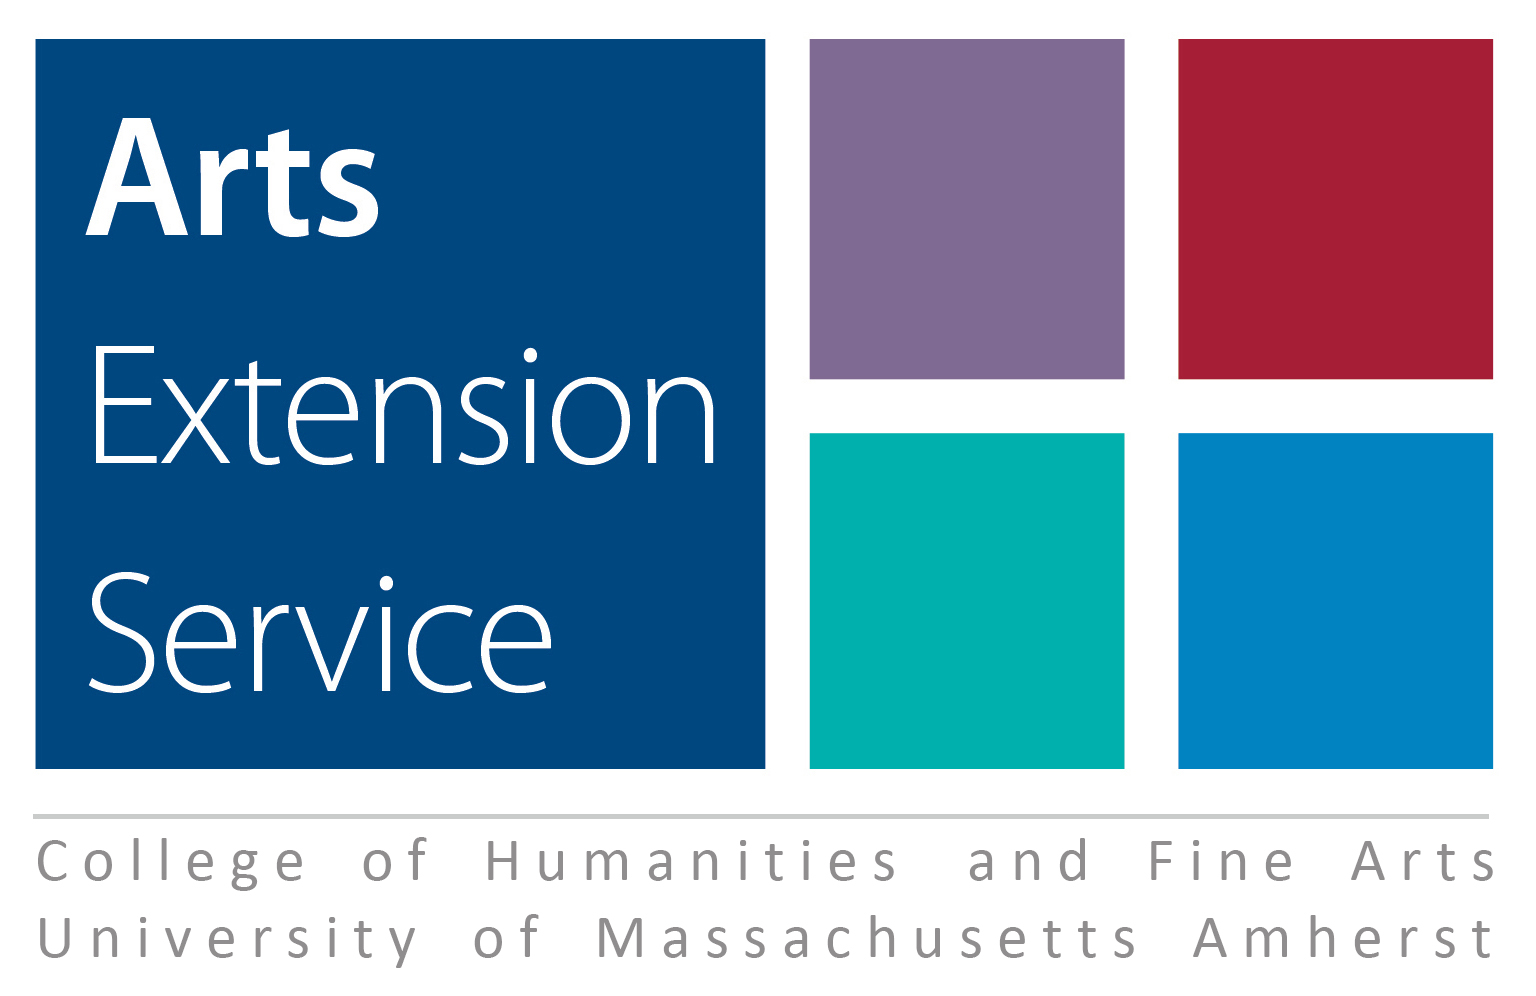 Arts Extension Service Records image